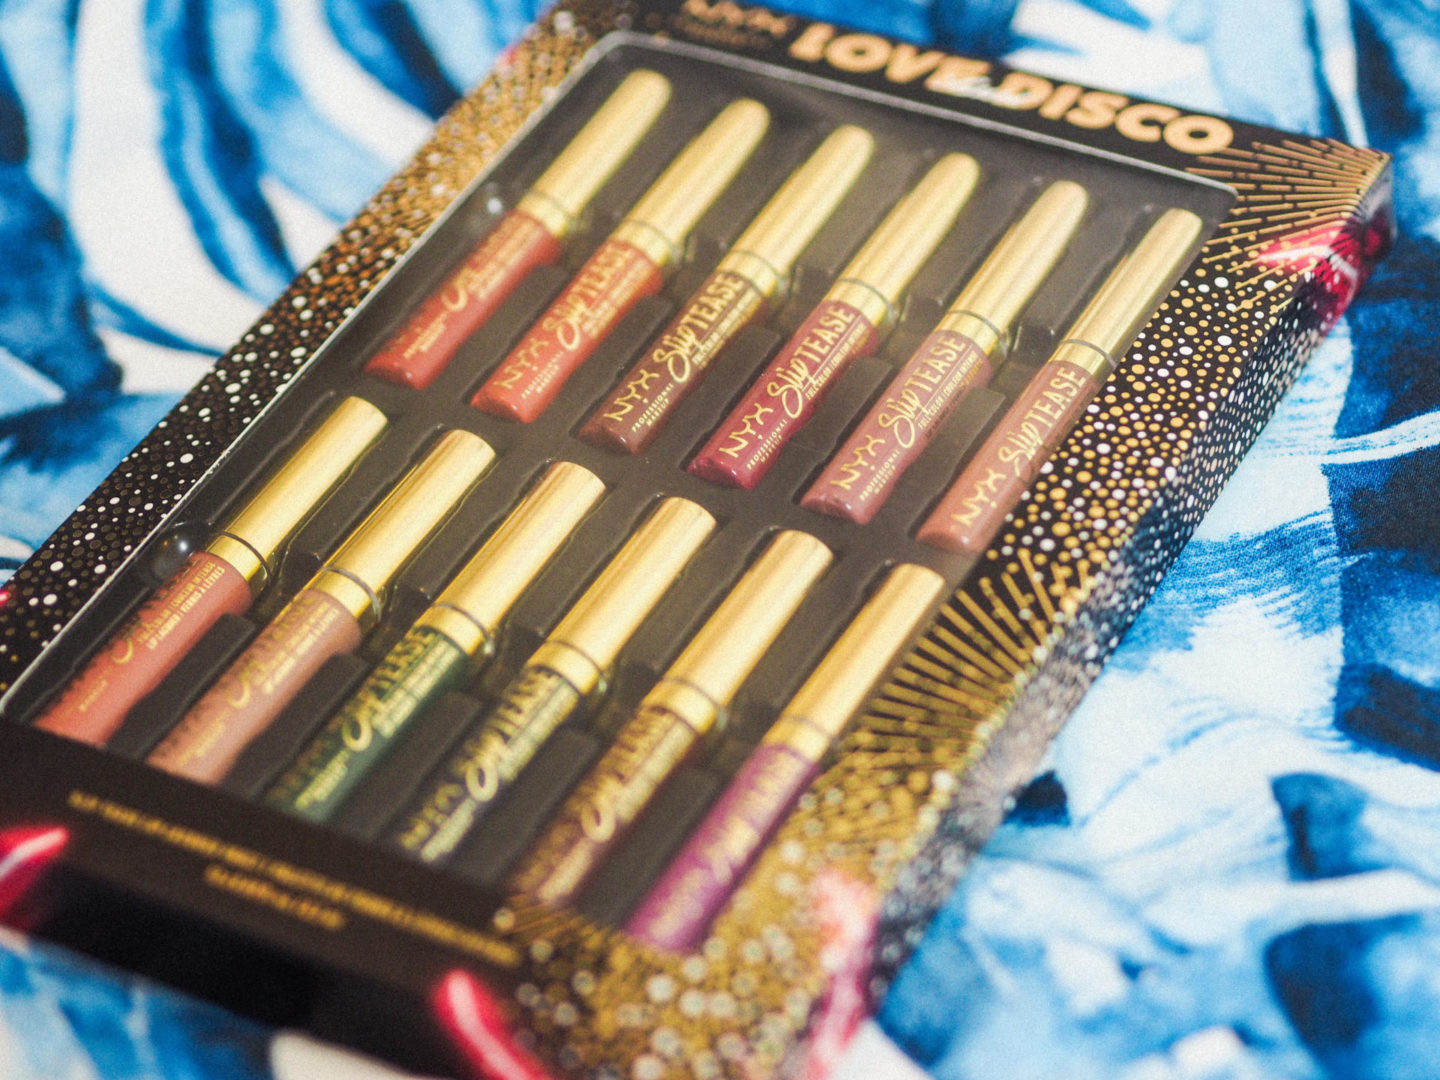 The Best Black Friday Deals: Beauty Bargains at Notino - Rachel Nicole Blogger